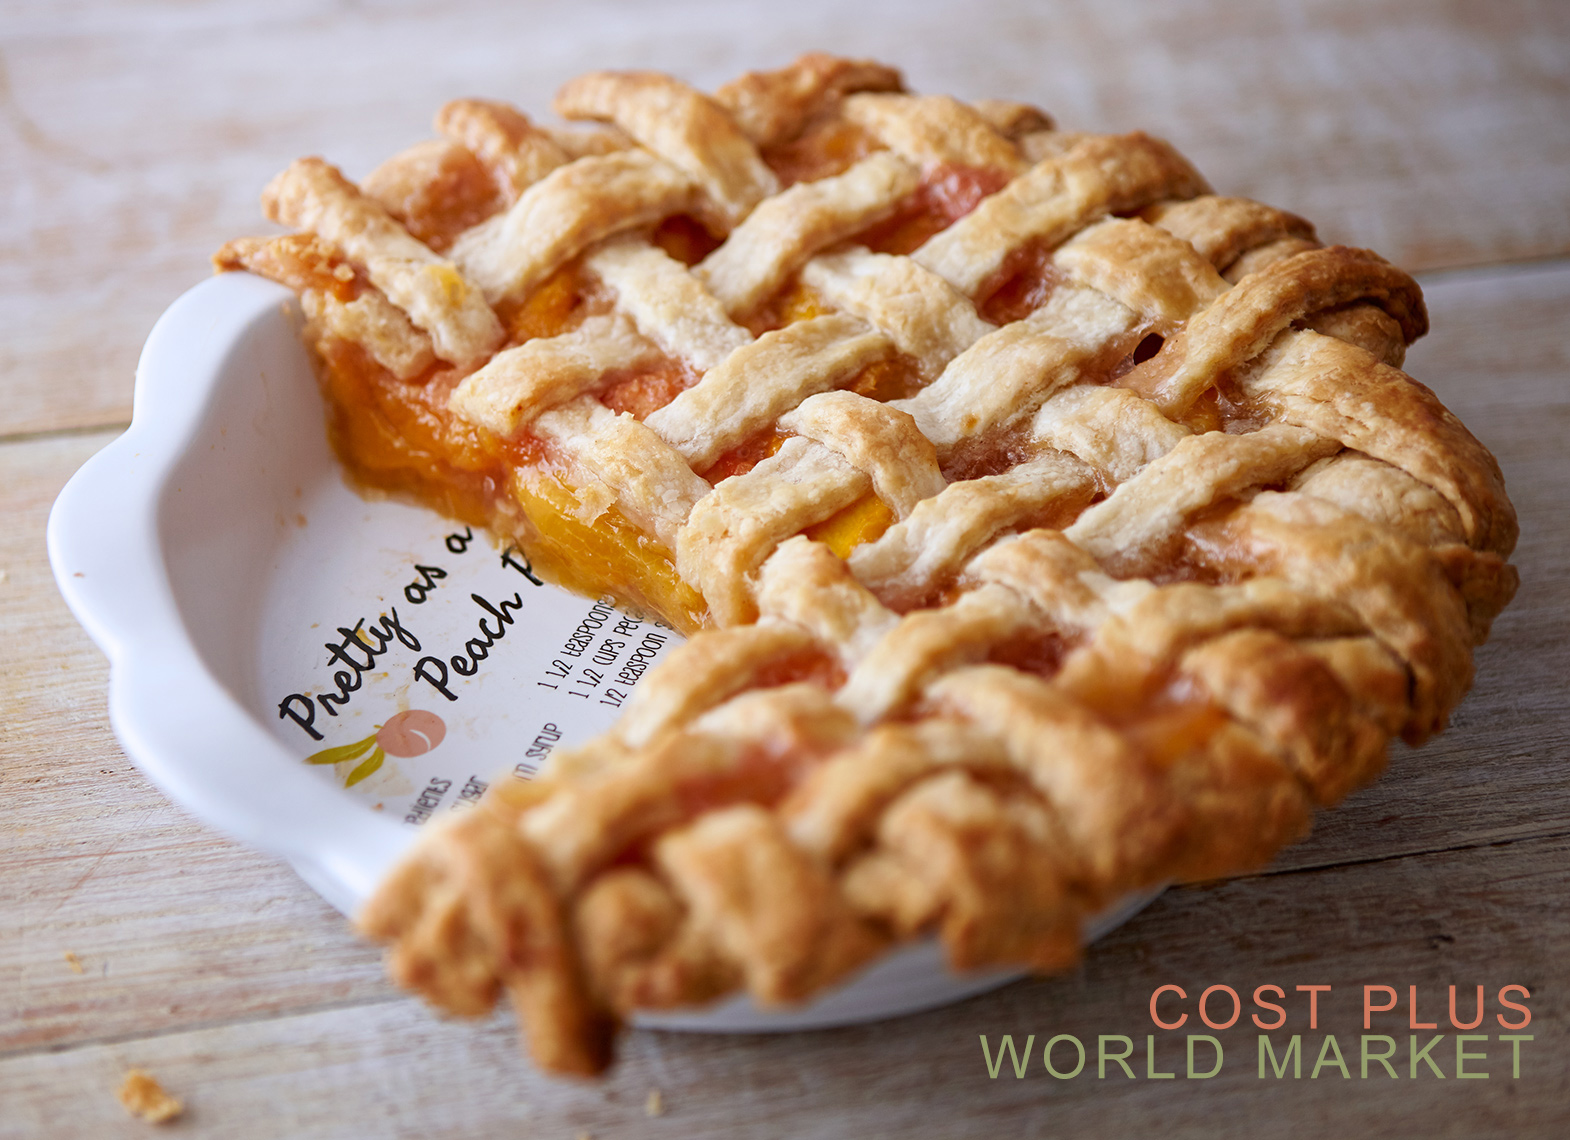 10Peach-Pie-with-writing-in-bowlTYPE